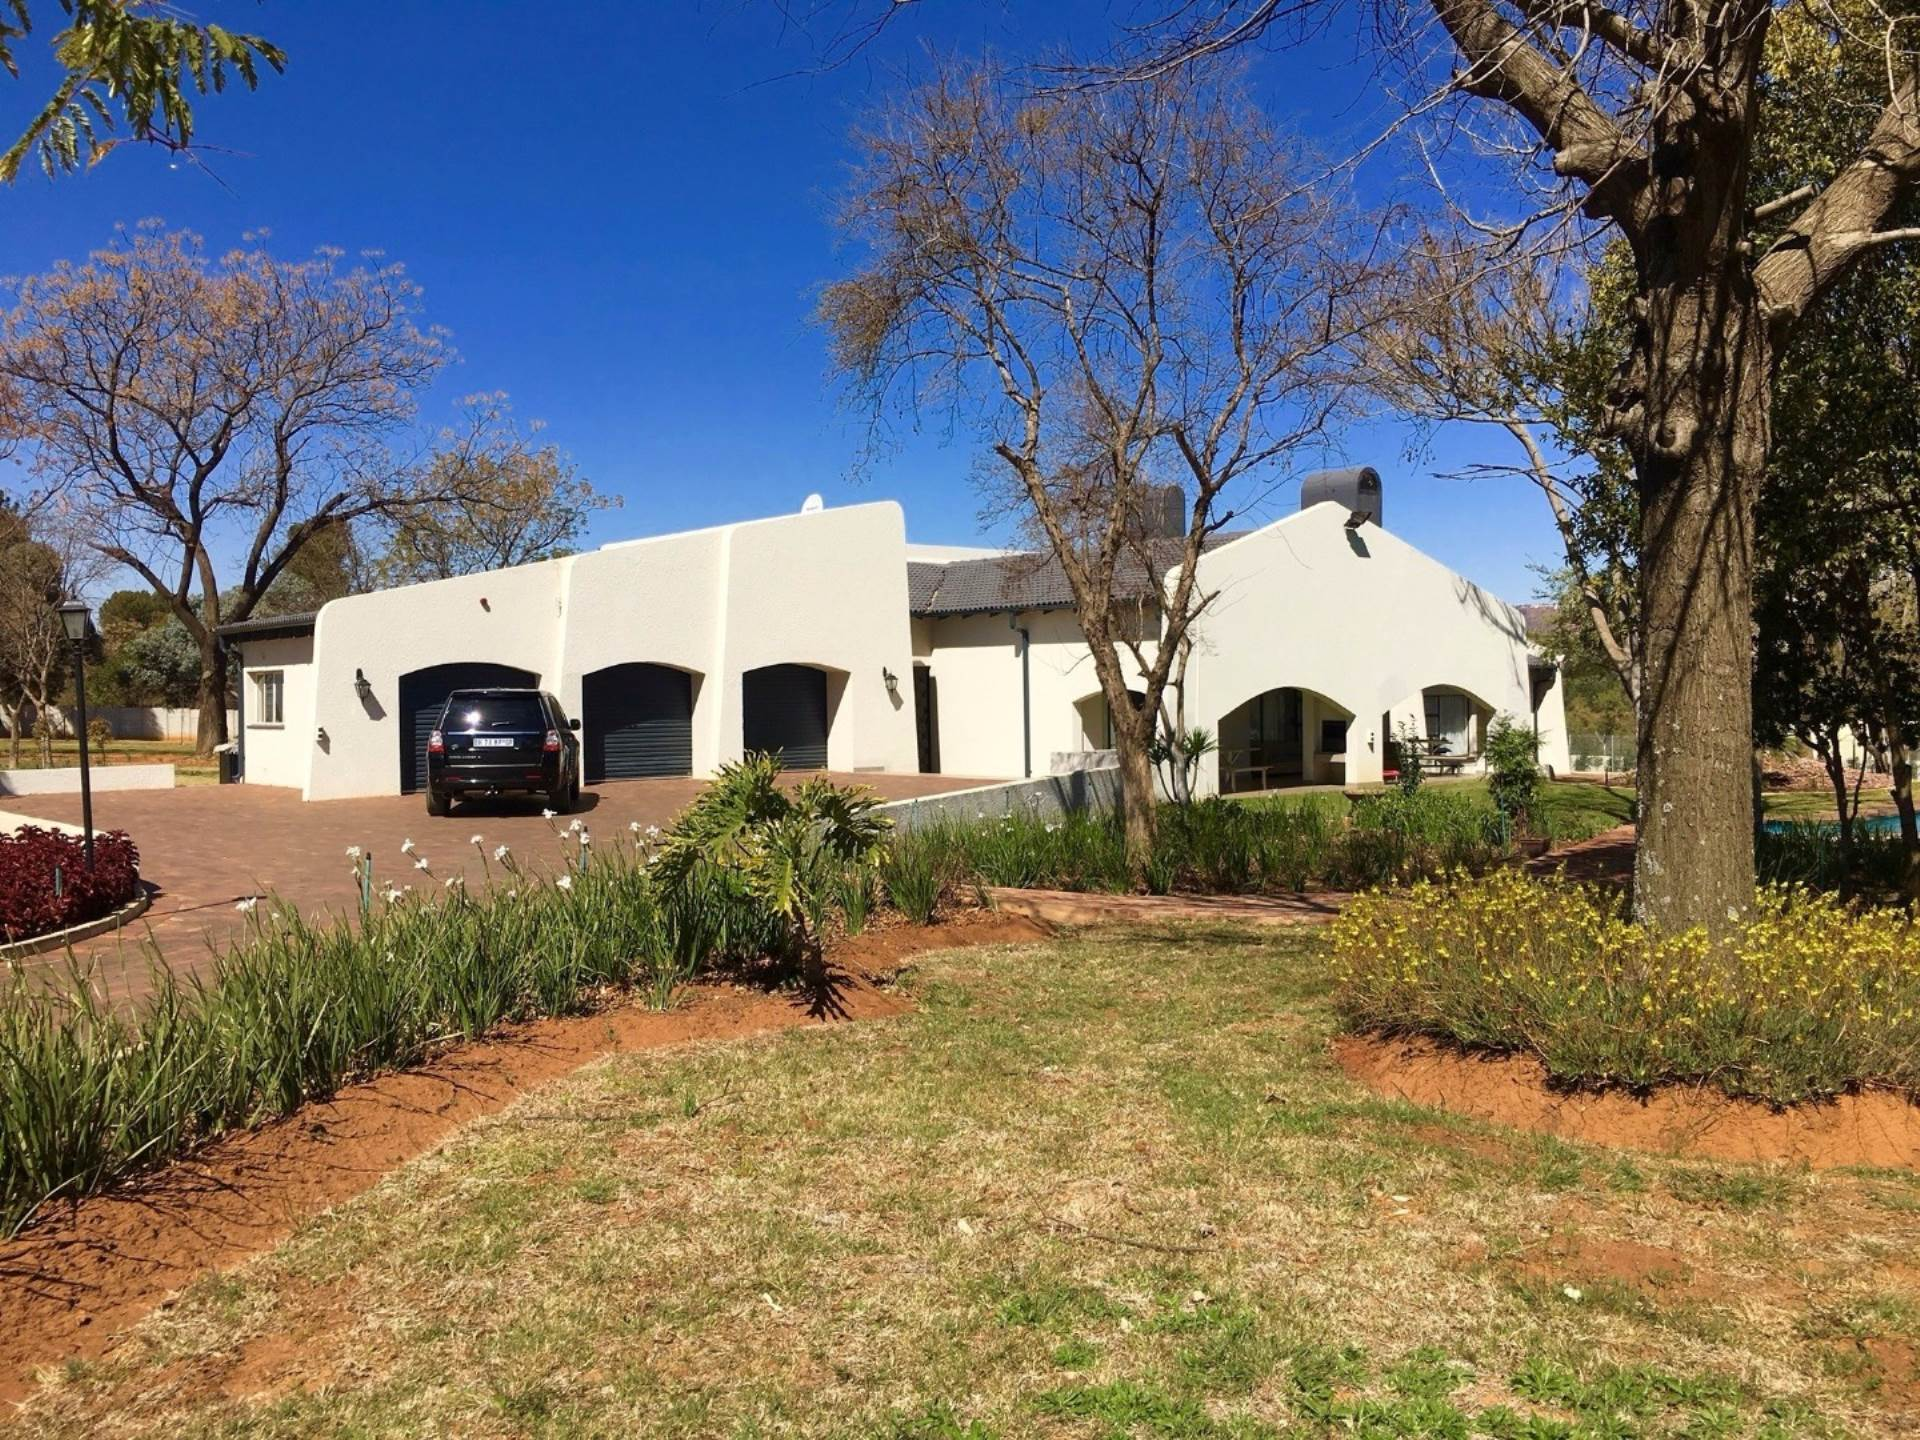 4 BedroomHouse For Sale In Rietfontein